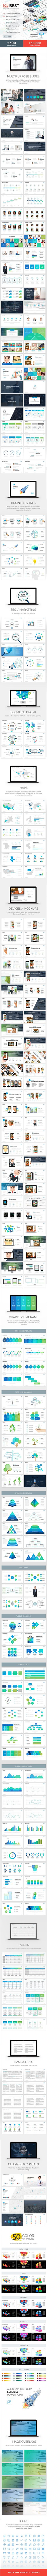 Best Keynote Presentation Template #design Download: http://graphicriver.net/item/best-keynote-presentation-template/12070199?ref=ksioks